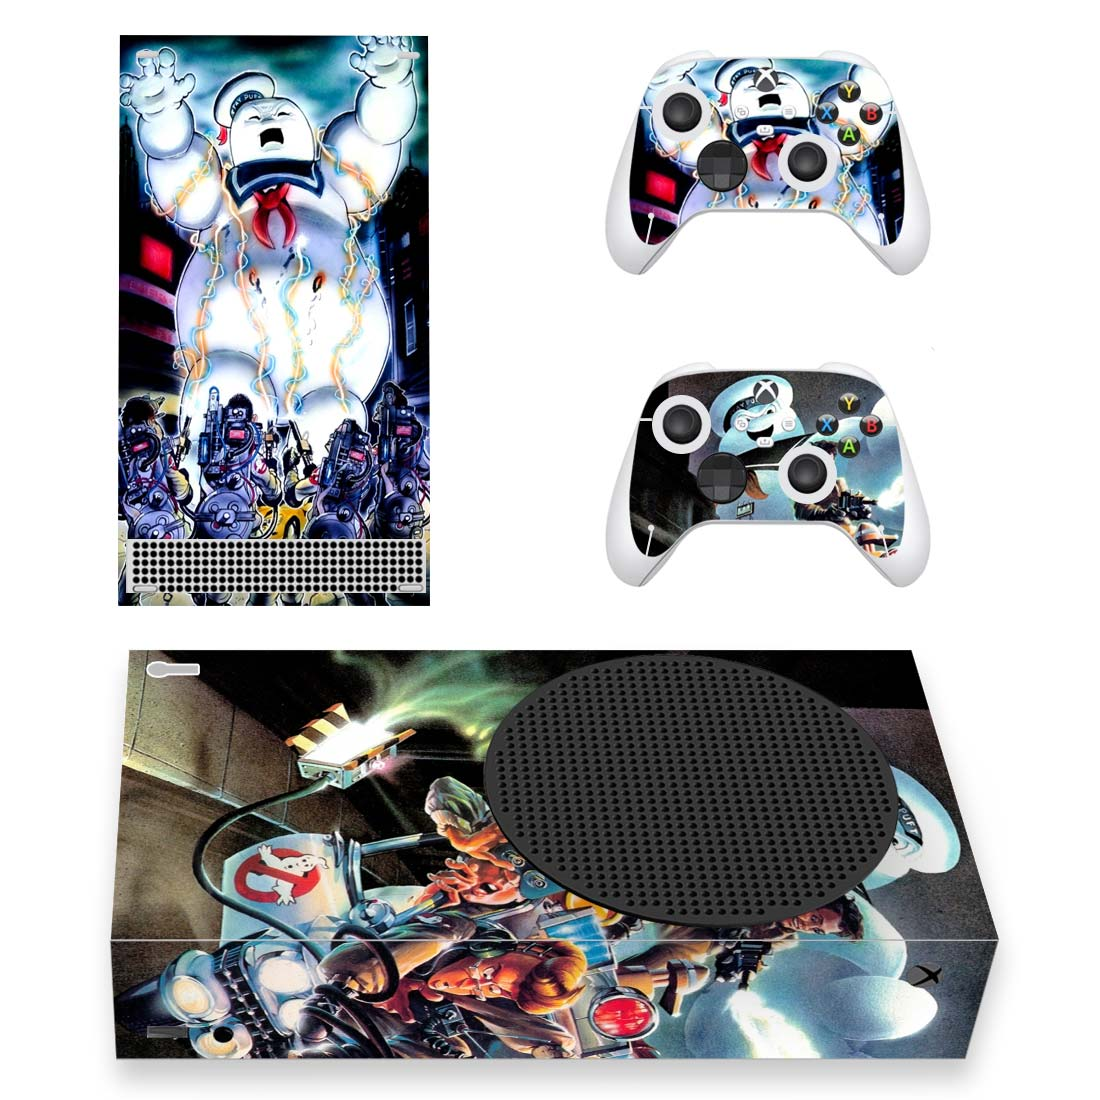 Stay Puft Marshmallow Man Skin Sticker Decal For Xbox Series S